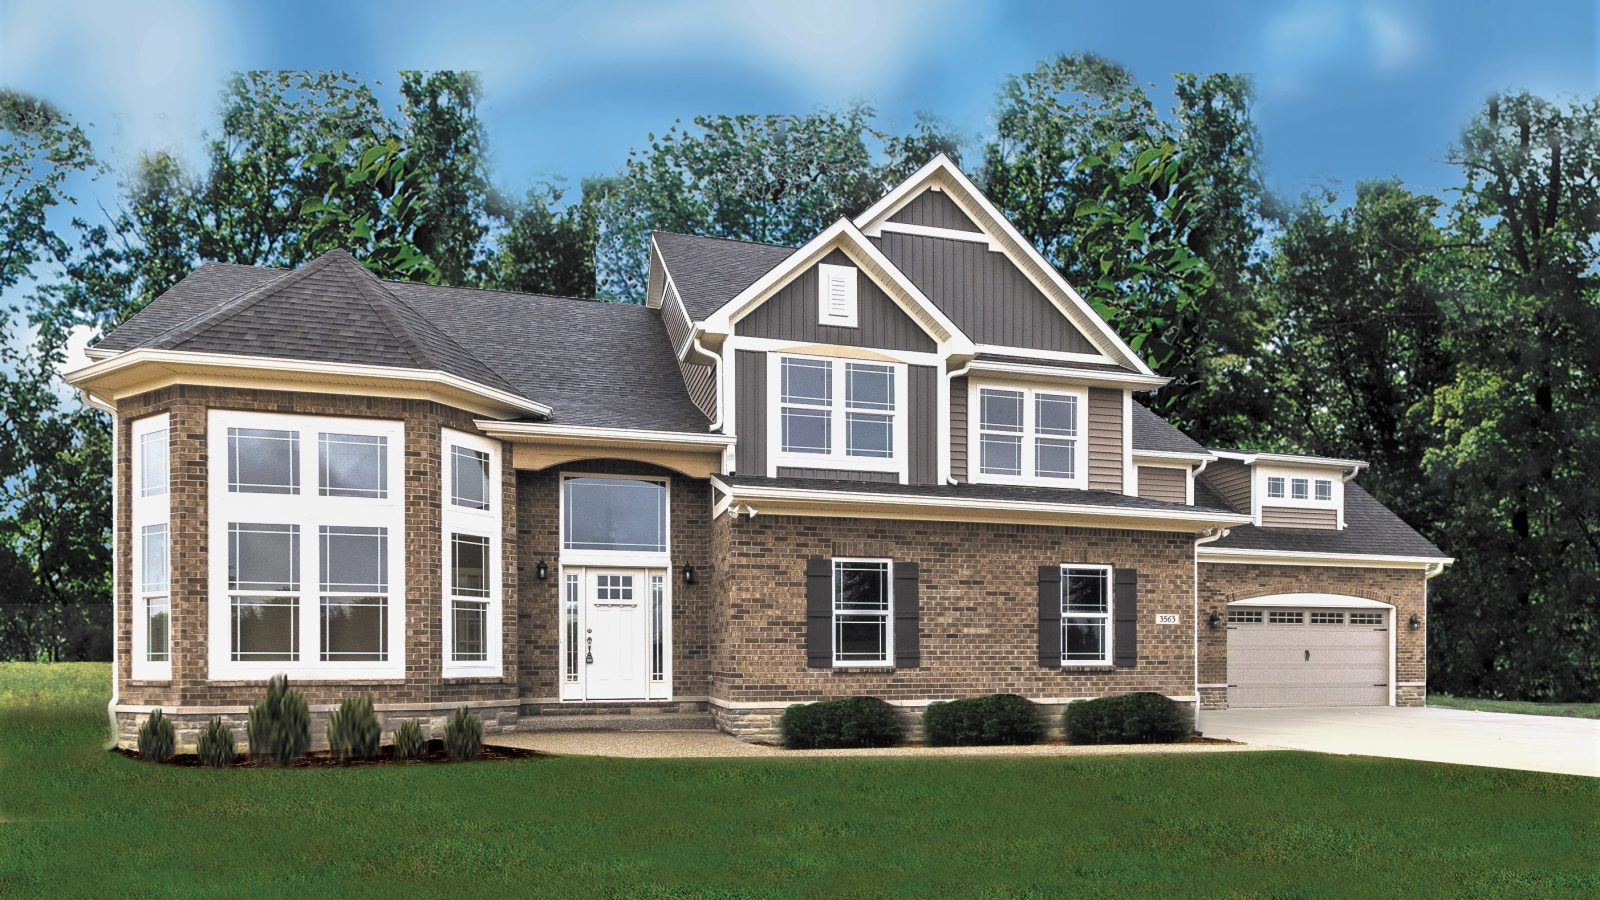 Central Indiana Home Builder - Davis Homes on